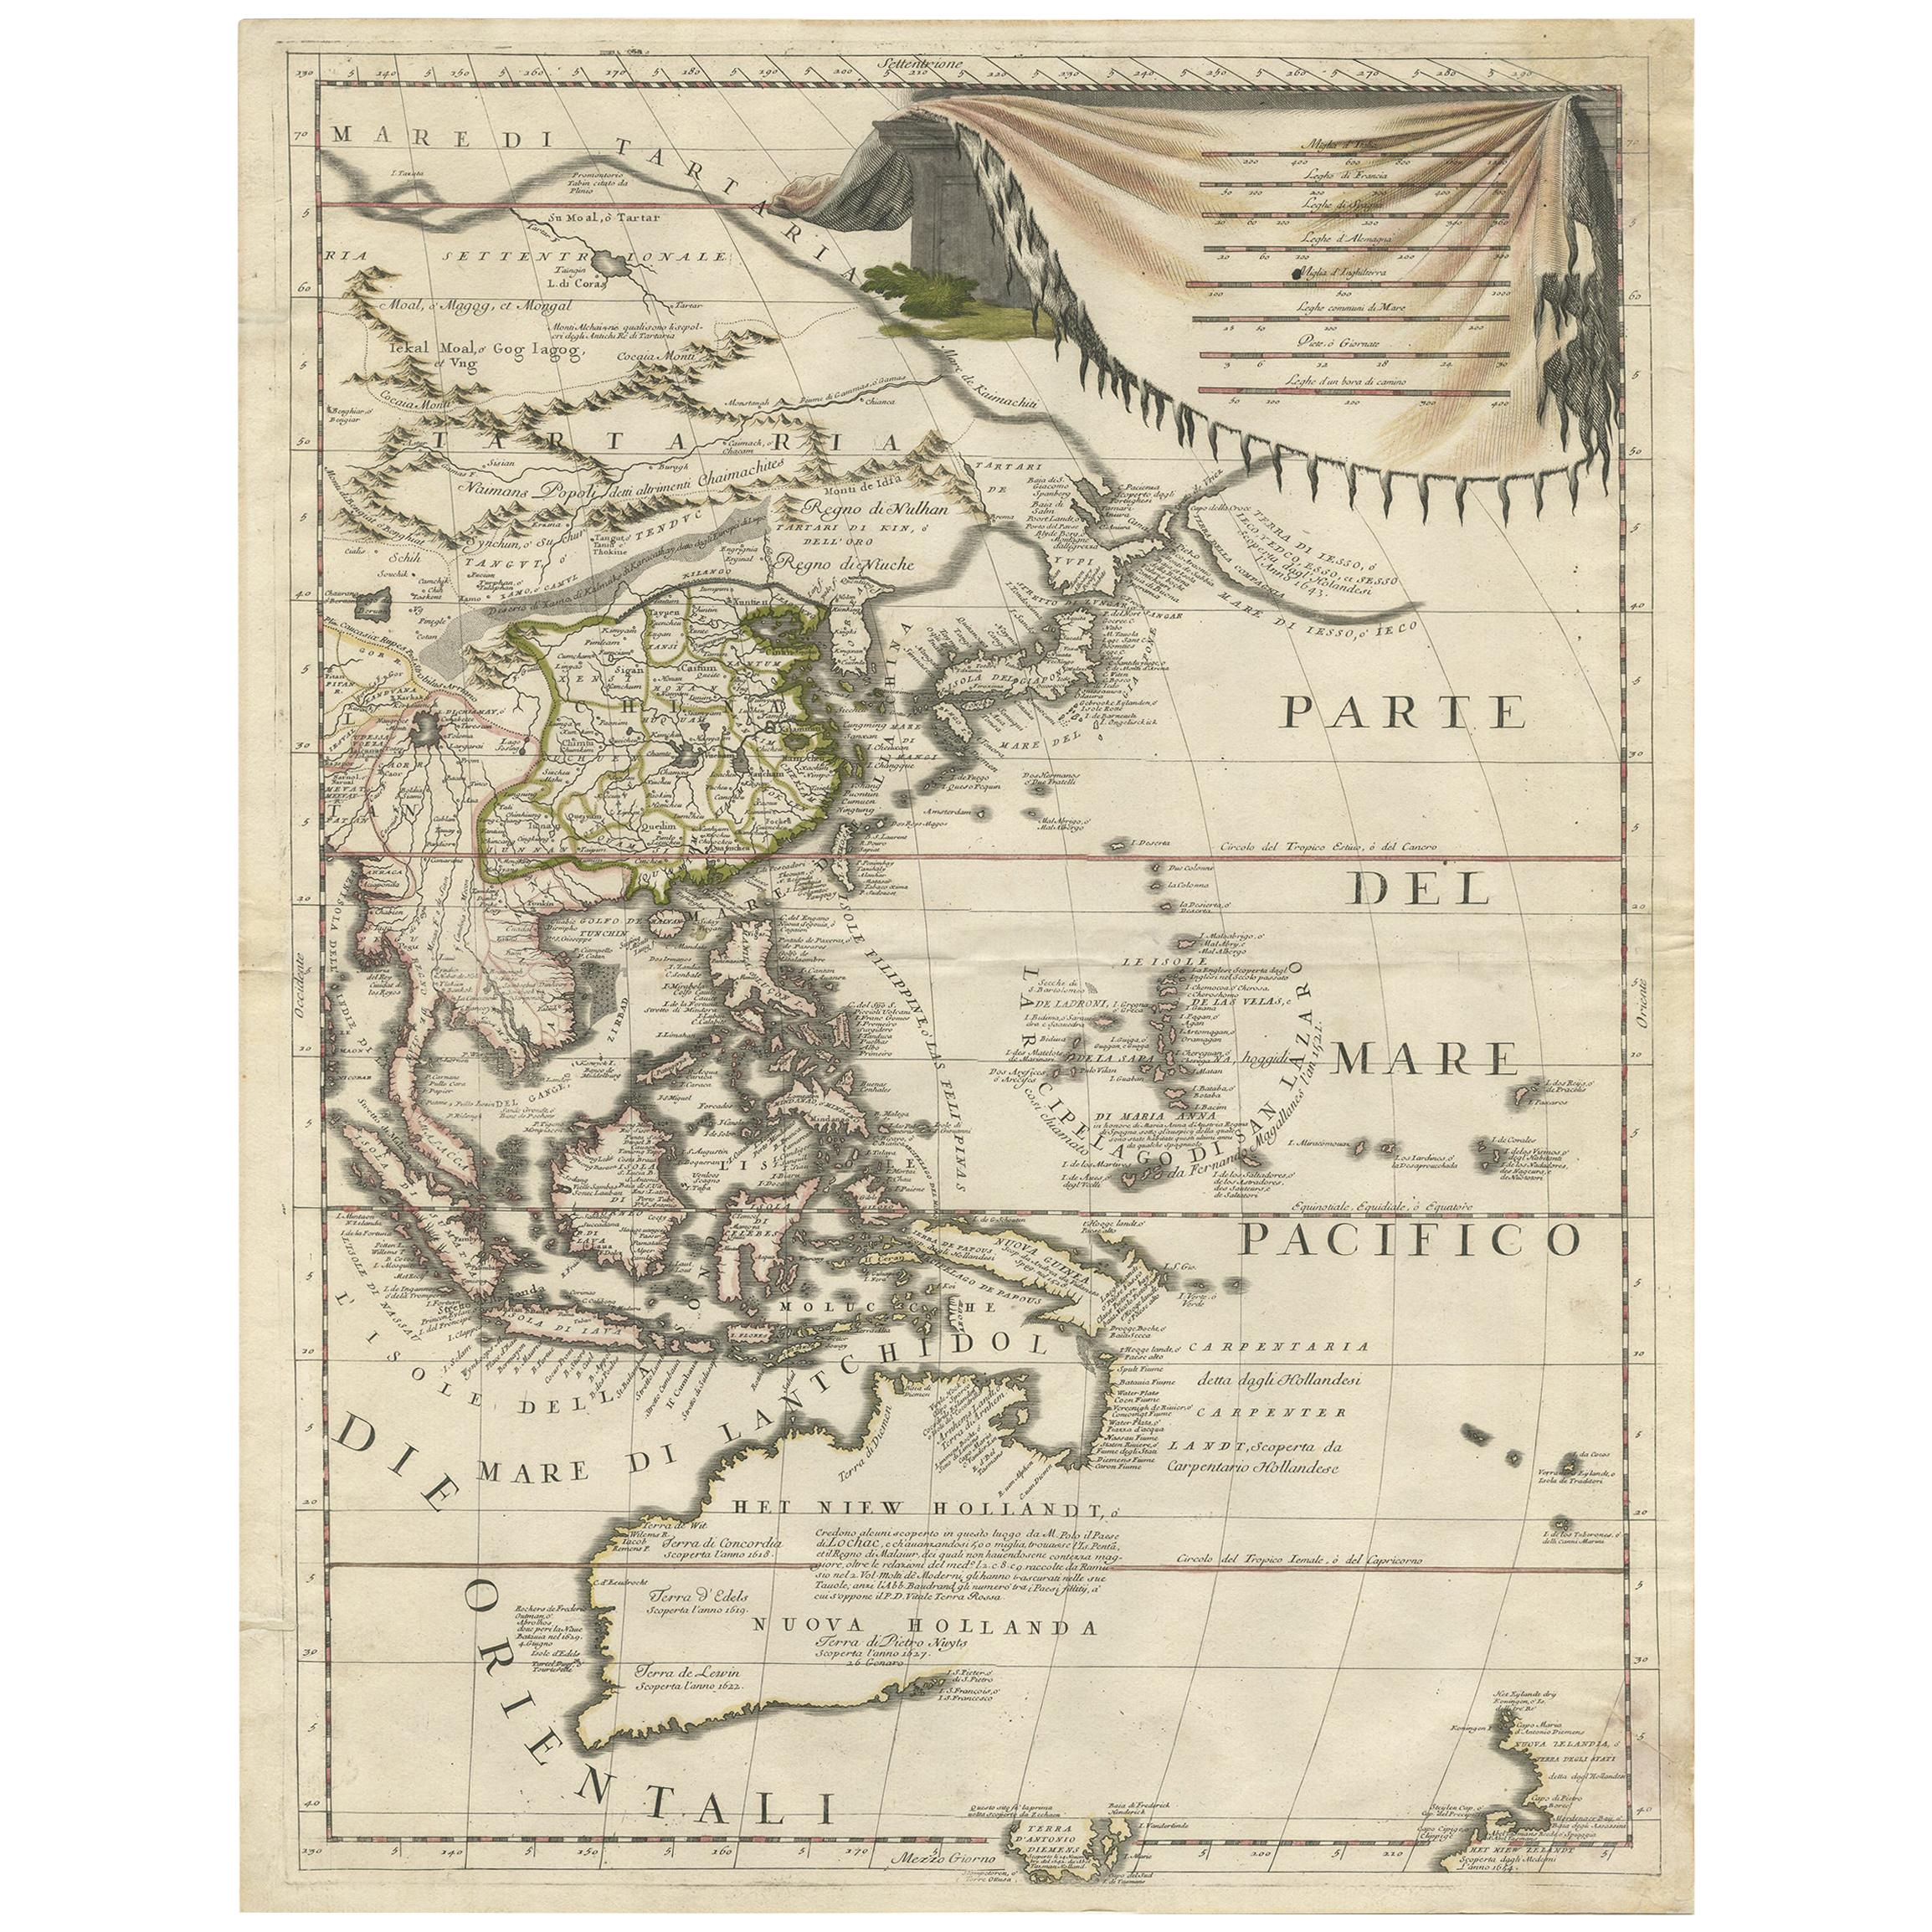 Antique Map of East Asia by Coronelli, circa 1690